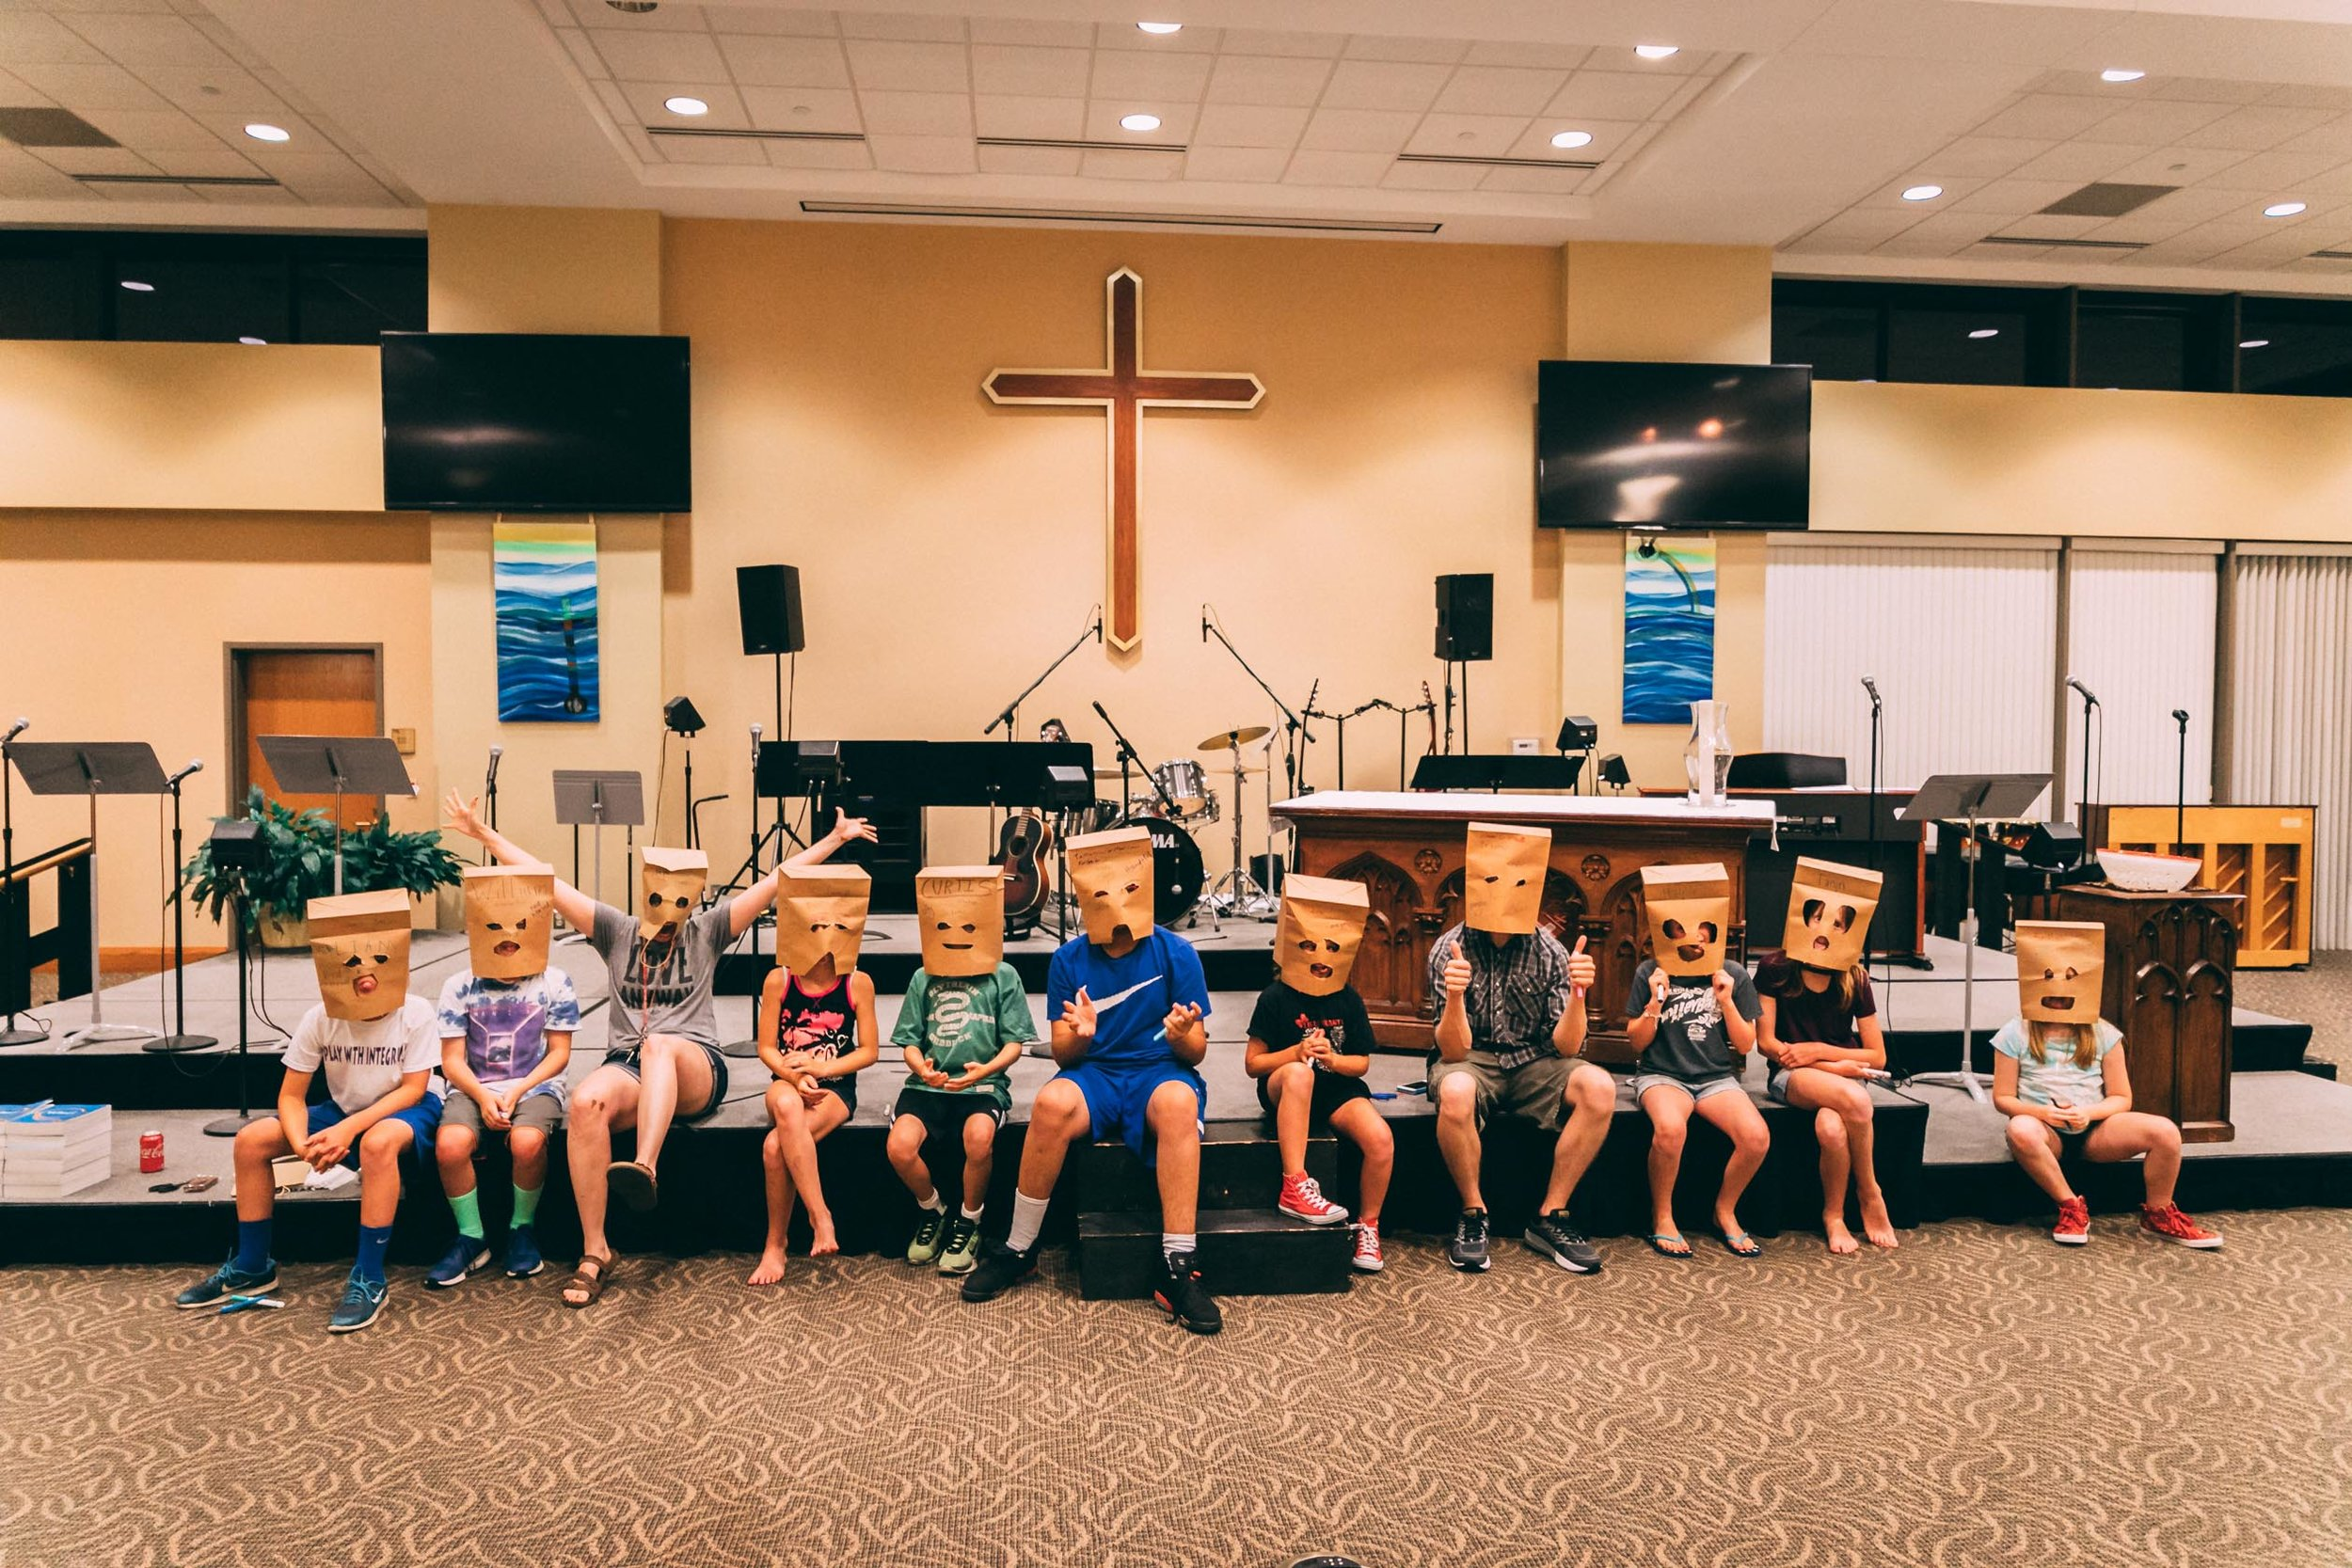 Preteens have fun in a team building exercise at an all-night lock-in last summer.